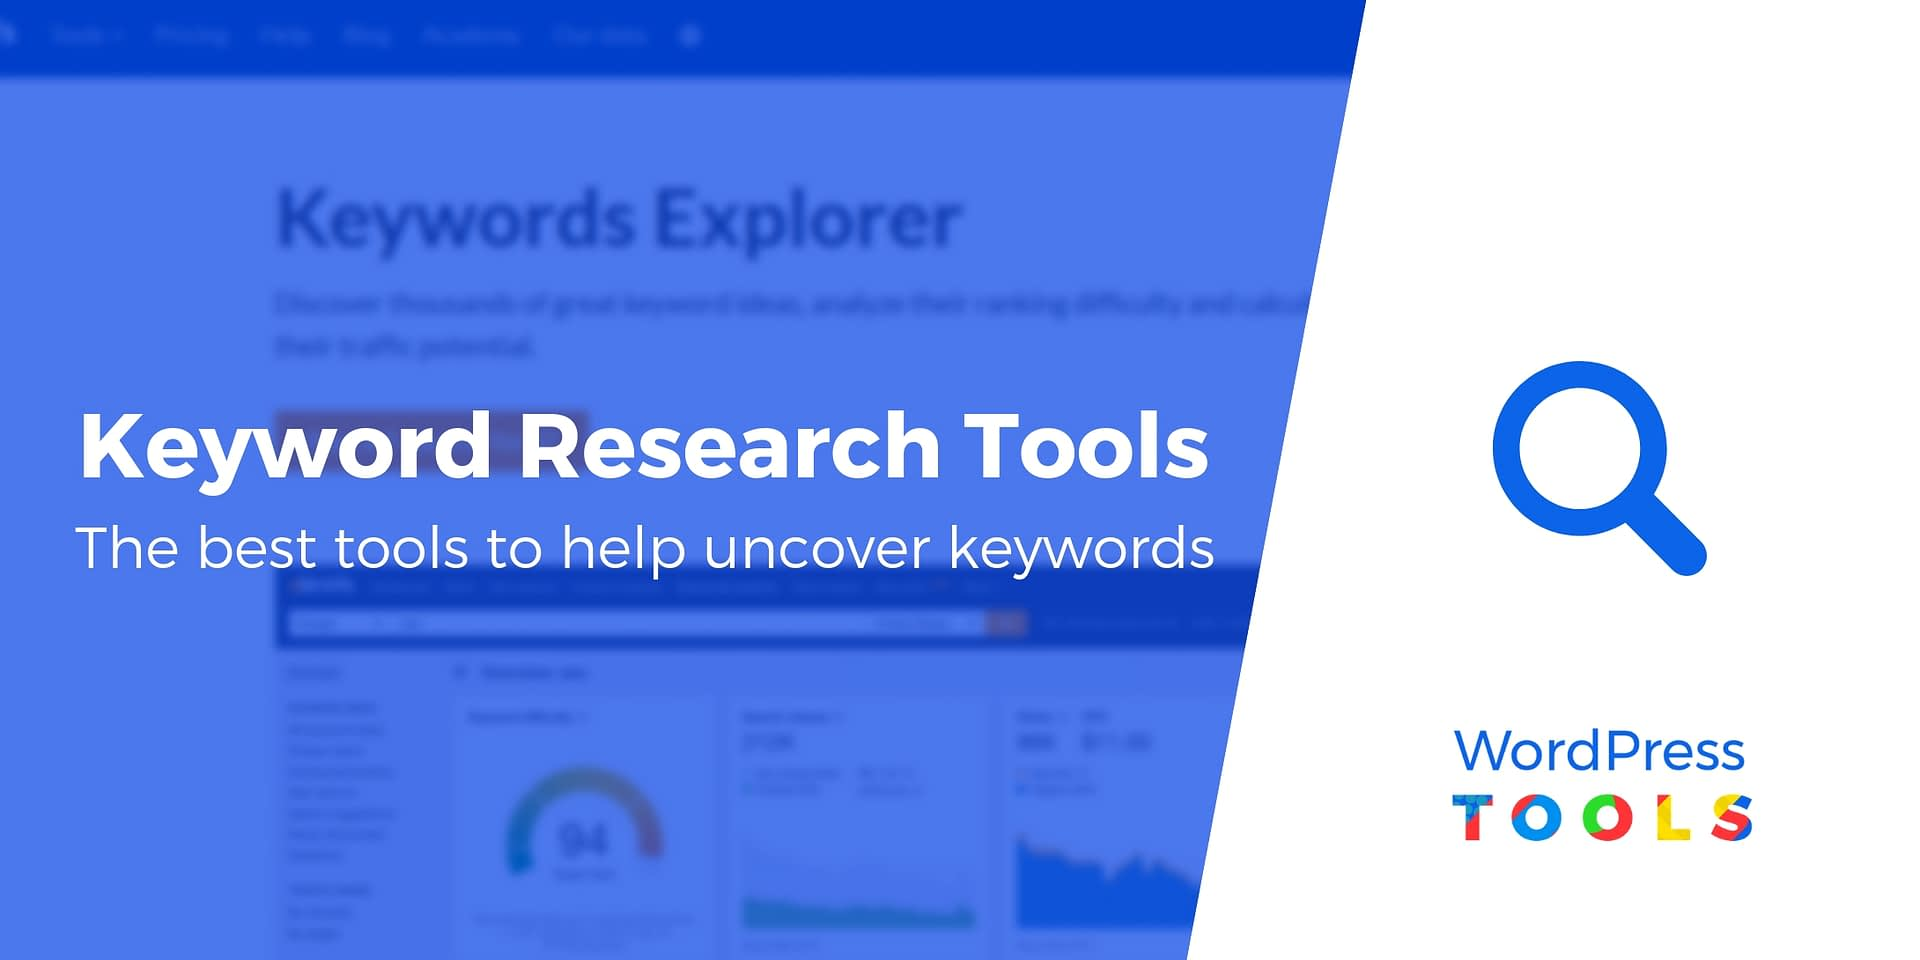 Best Keyword Tool 2019 10 Best Keyword Research Tools in 2019 (Including Free Options)